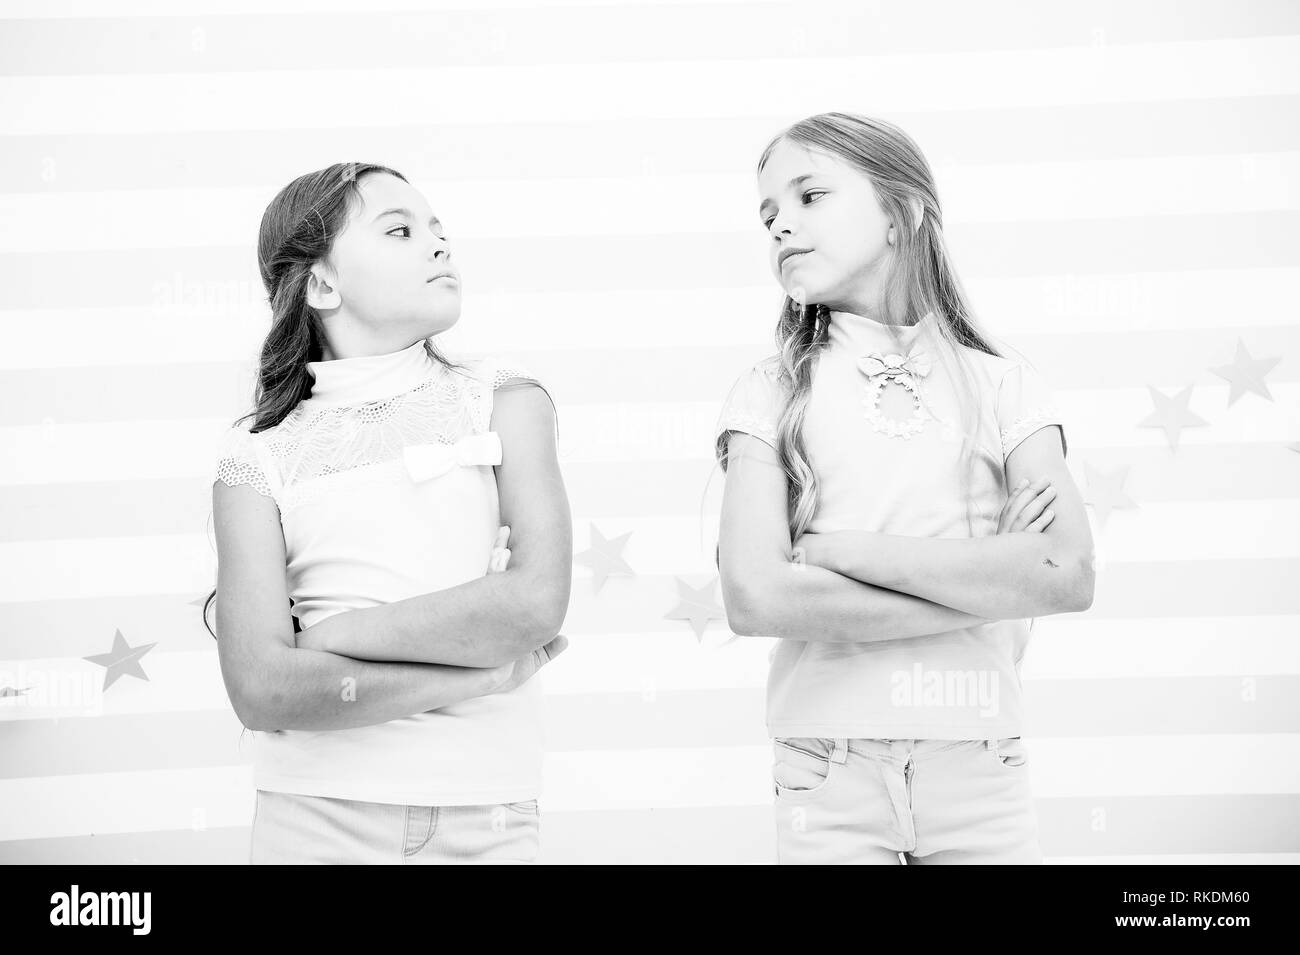 Schoolgirls haughty arrogant with folded arms chest. Best friends become enemies. Friendship relations issues. Girlish friendship problem. She definitely jealous. Girl arrogant faces confident pose. - Stock Image